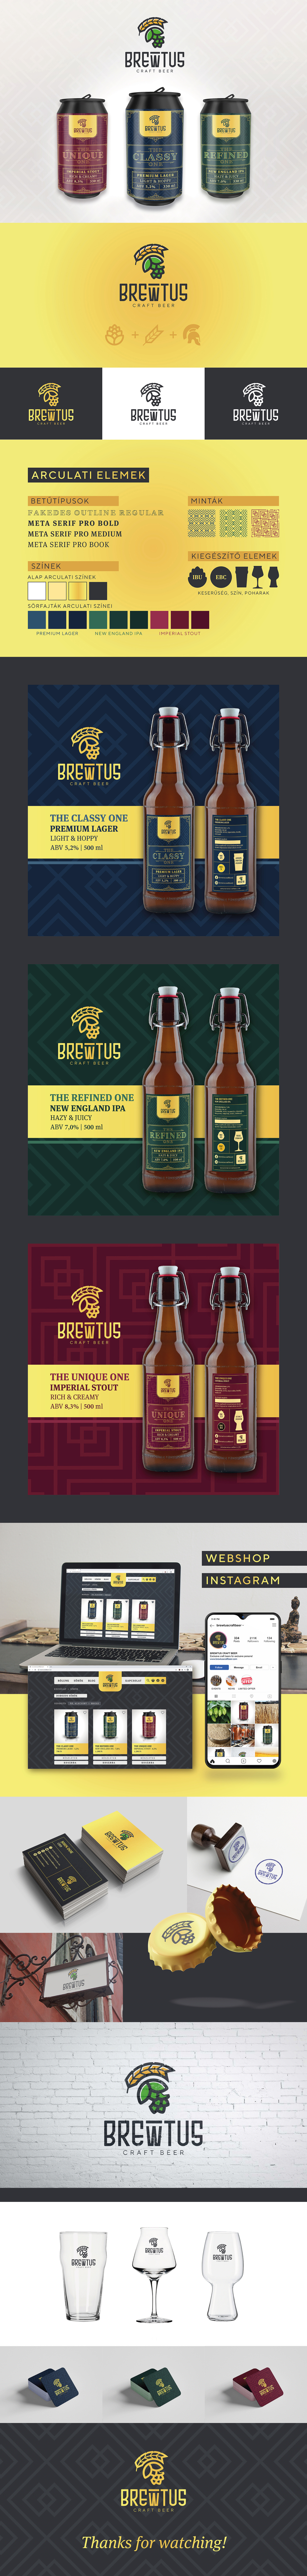 Brewtus Craft Beer - 1 by Kis Tamás